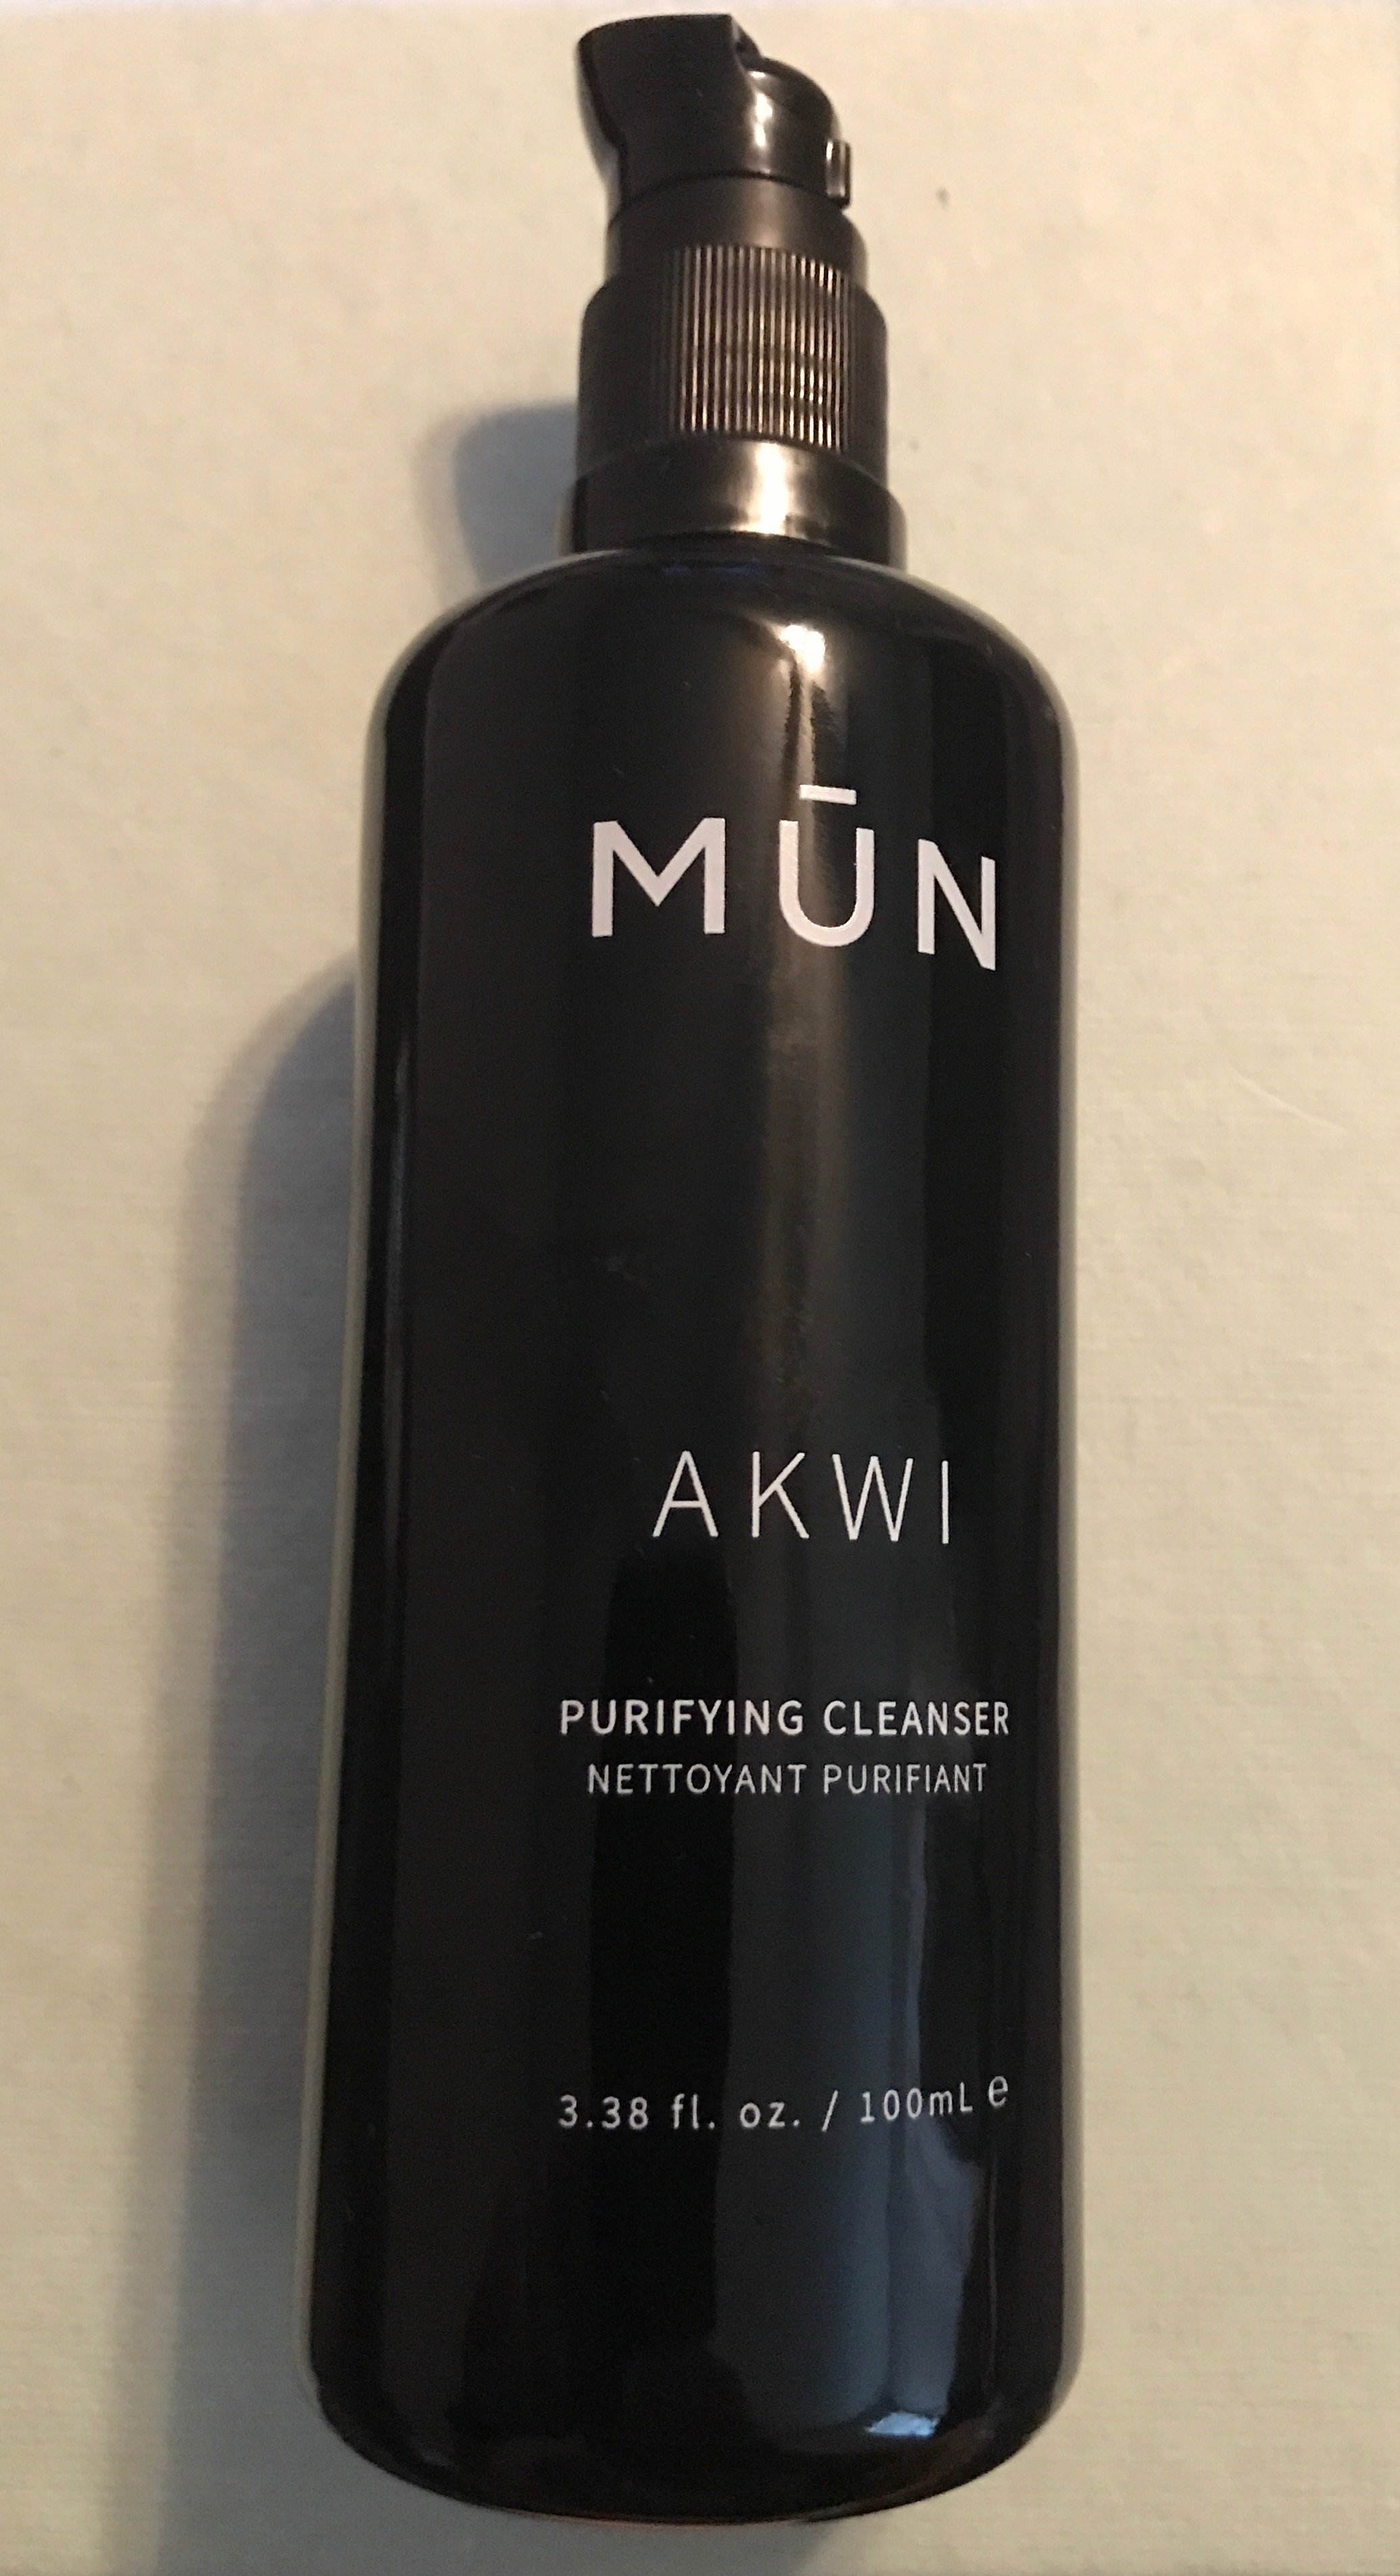 New MUN Akwi Purifying Cleanser